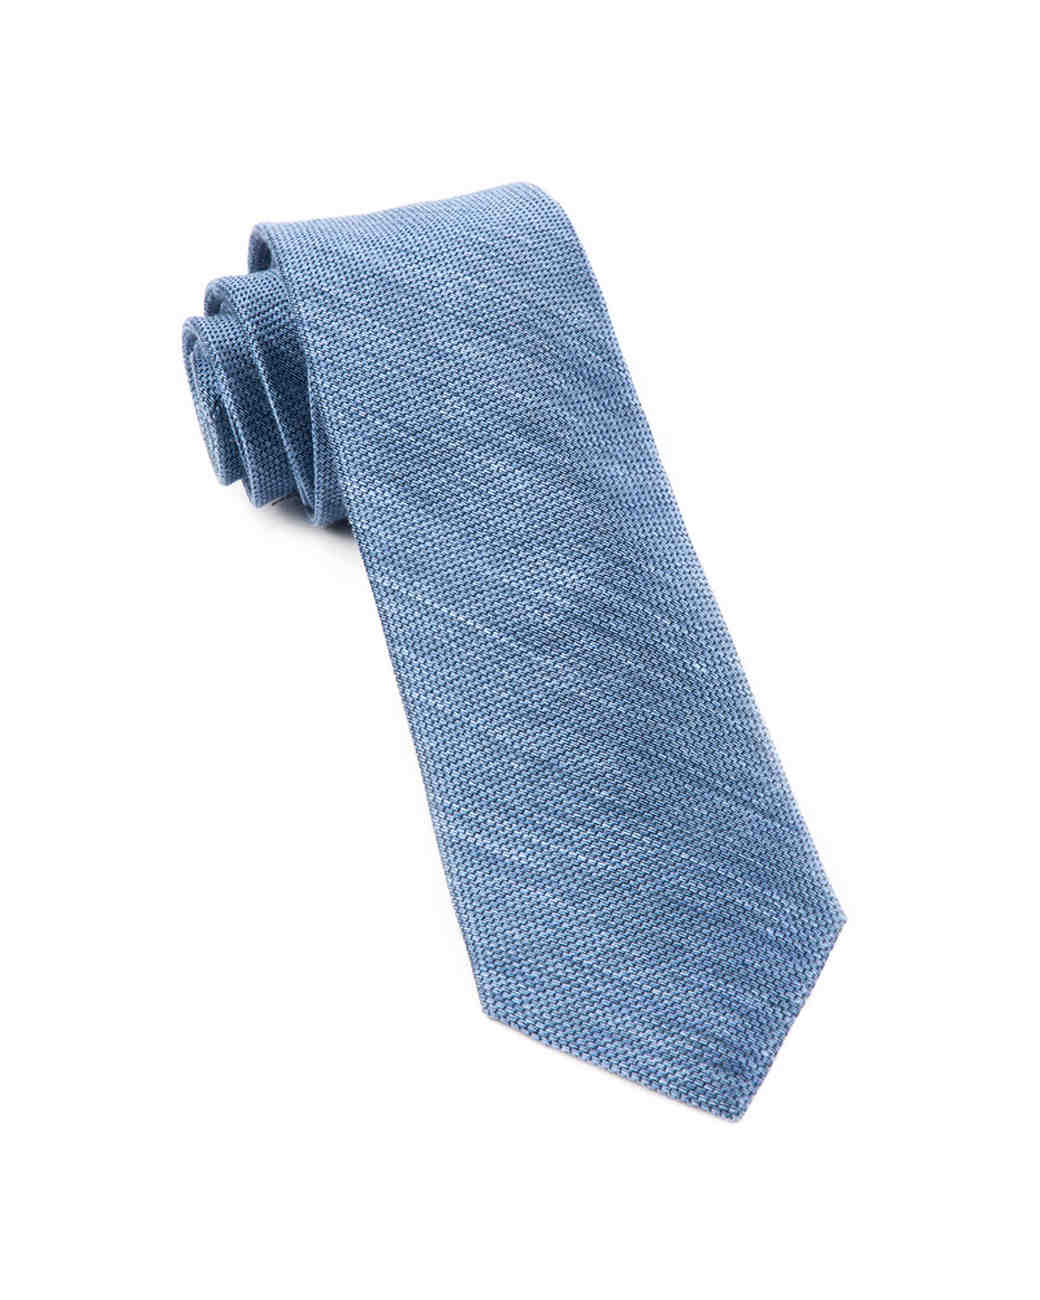 The Tie Bar x Destination Hotels Capsule Blue Chambray Tie